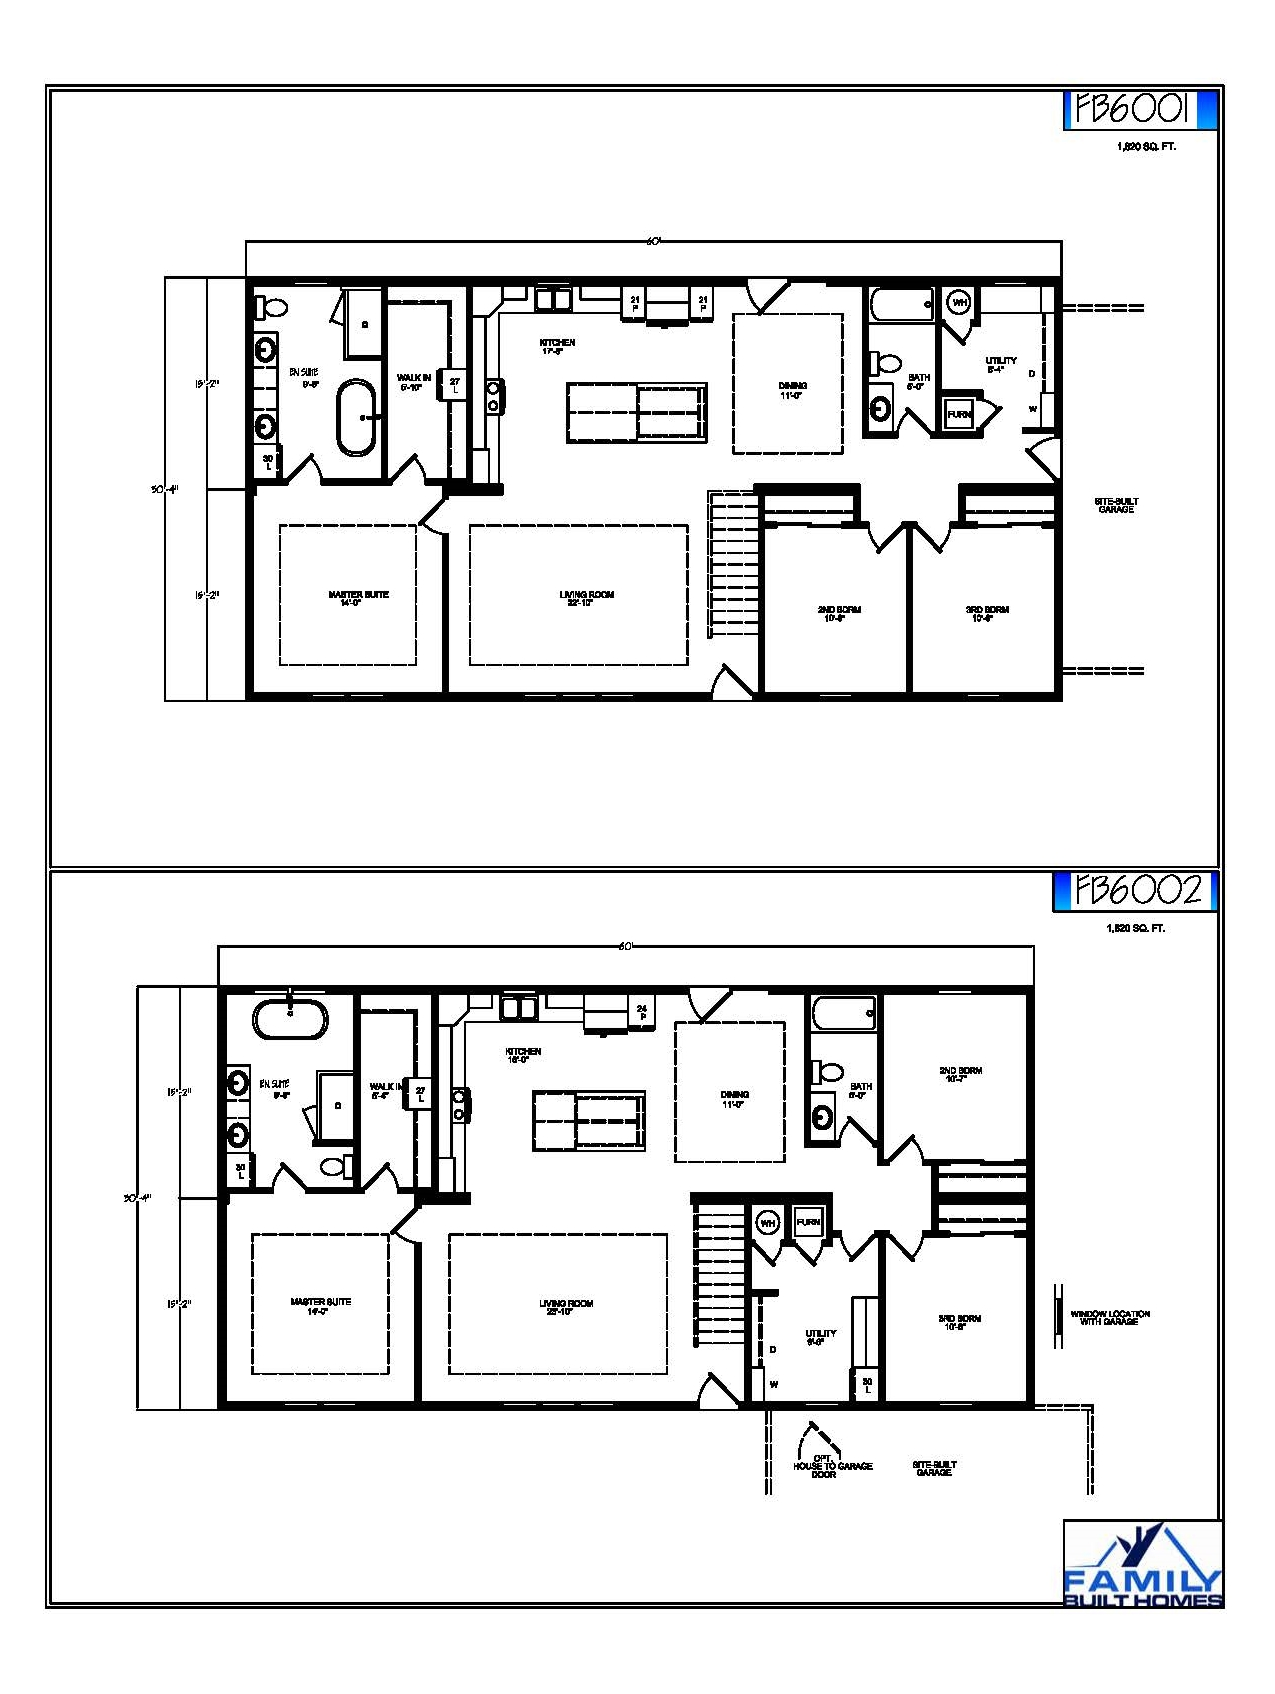 Floor plan collection sheets Model 601&2.jpg